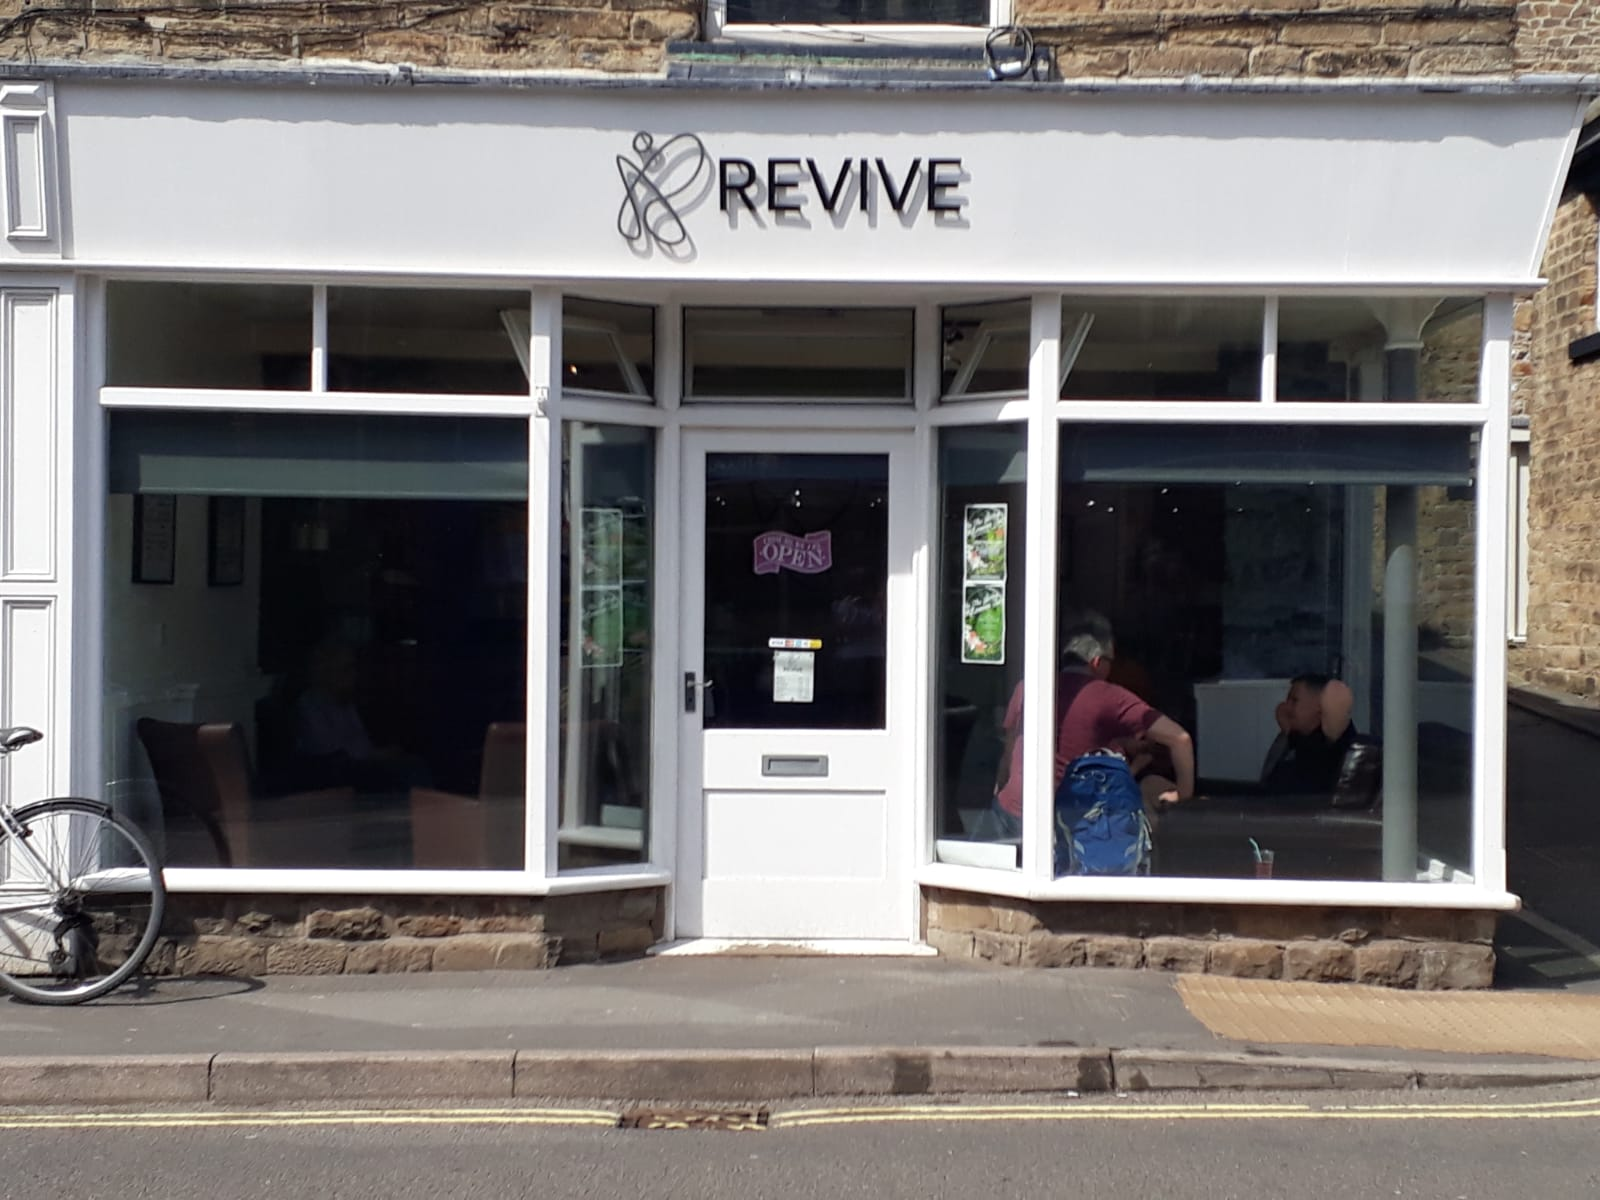 7. Revive Cafe